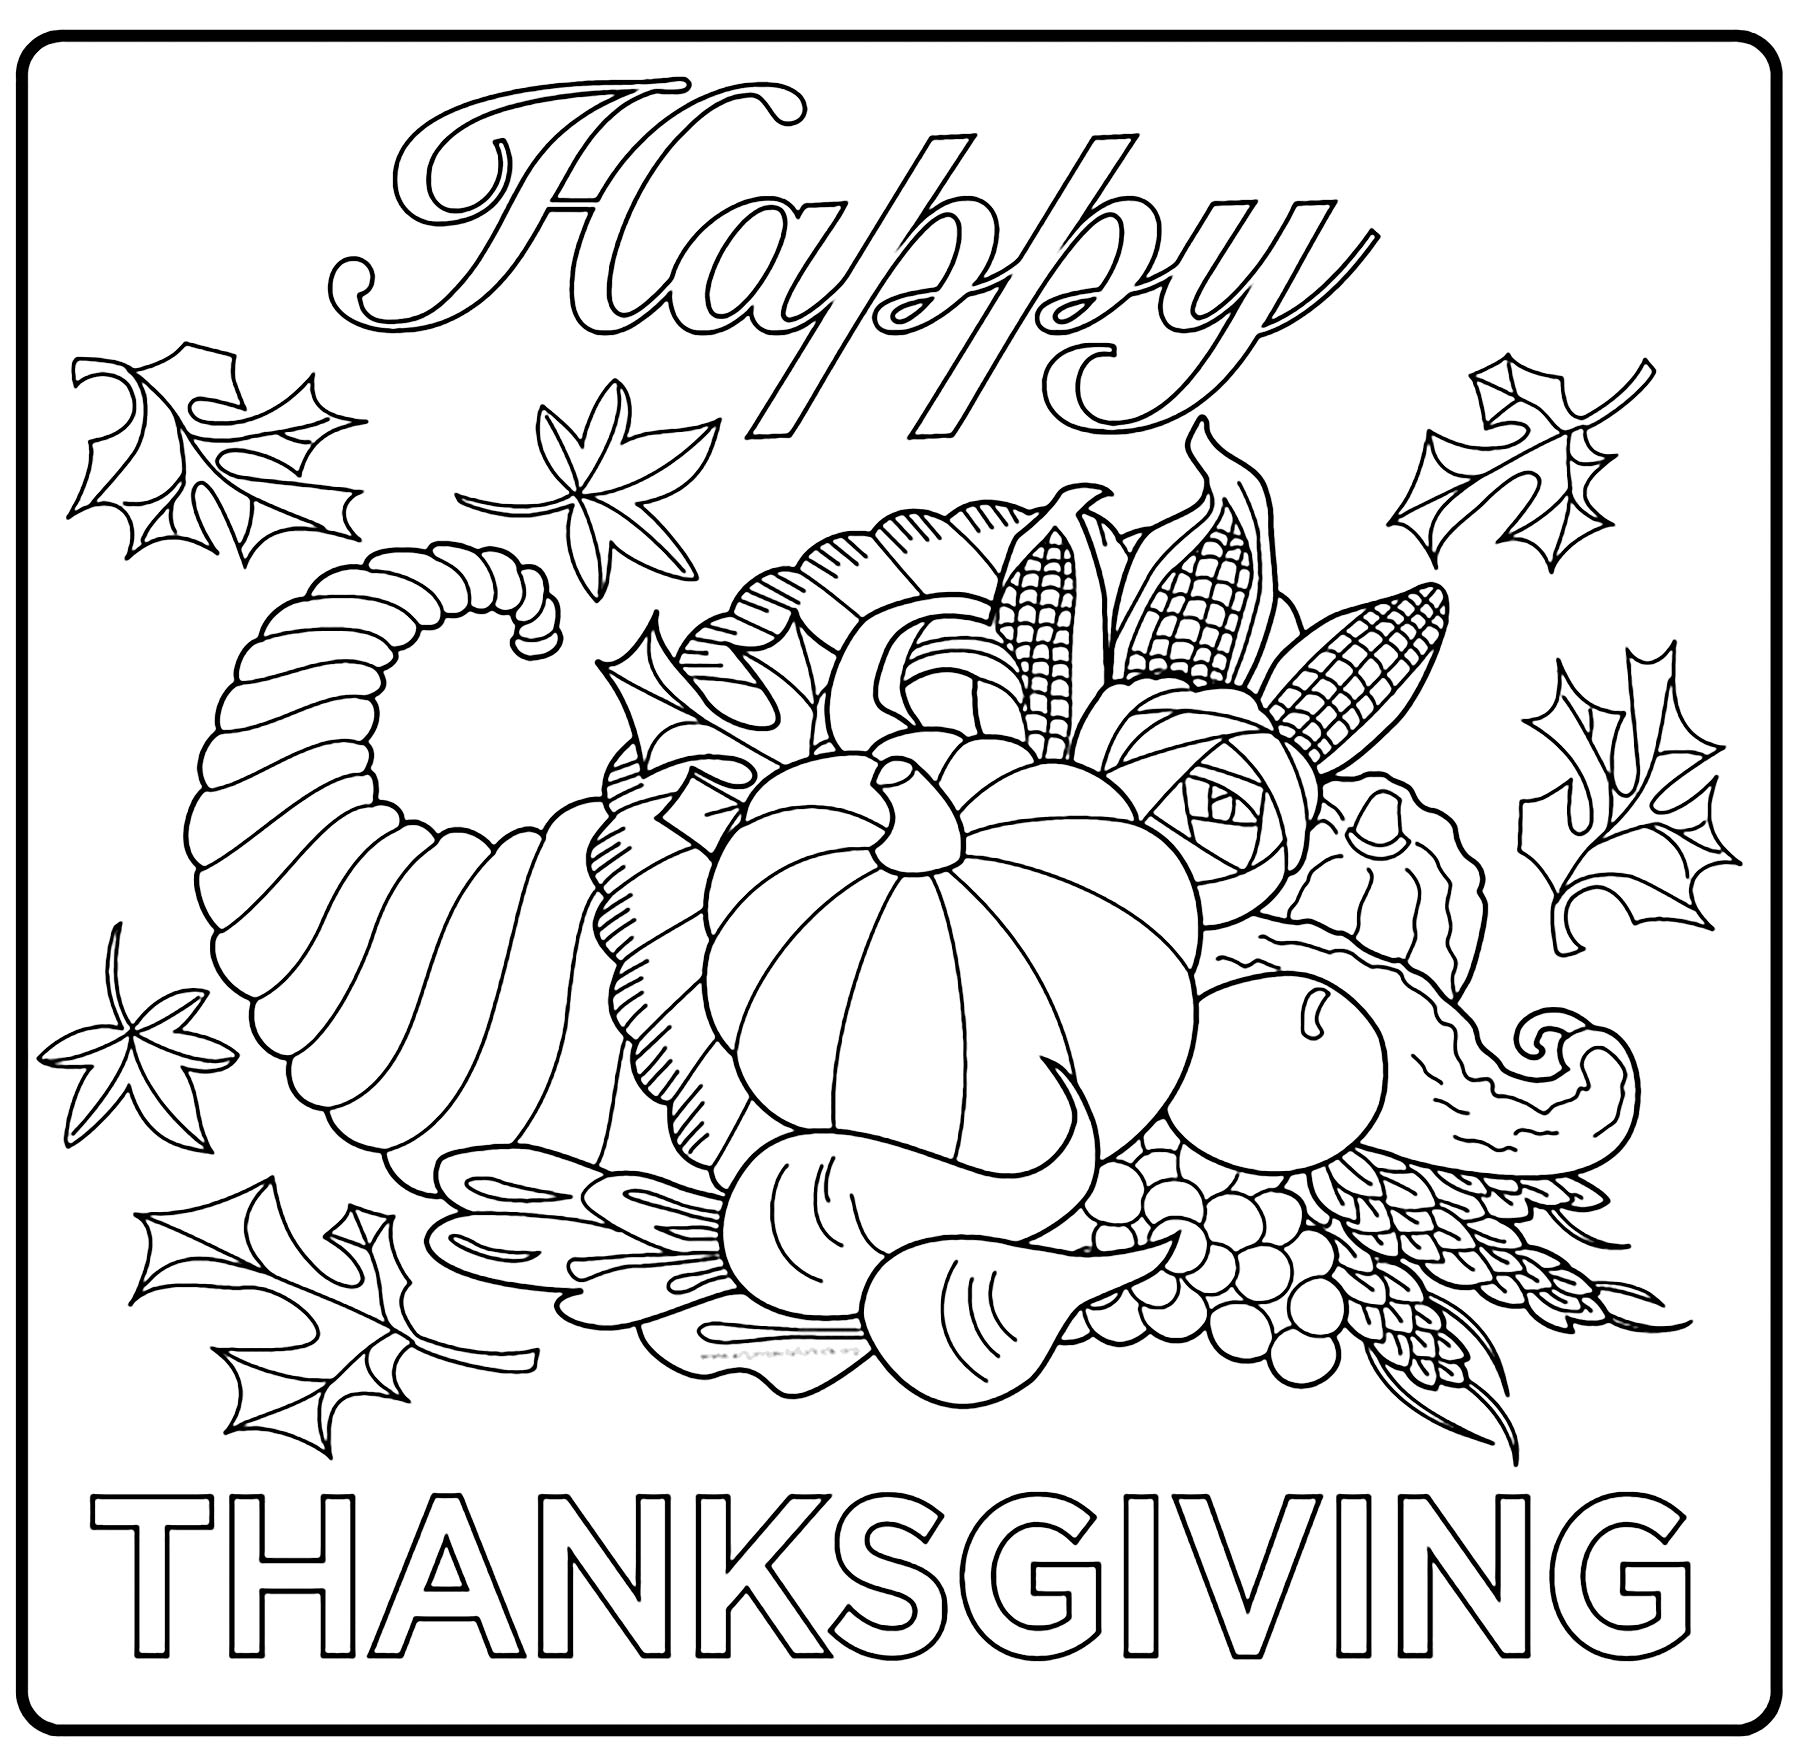 free coloring pages thanksgiving an adult coloring page for thanksgiving kitchn pages free coloring thanksgiving